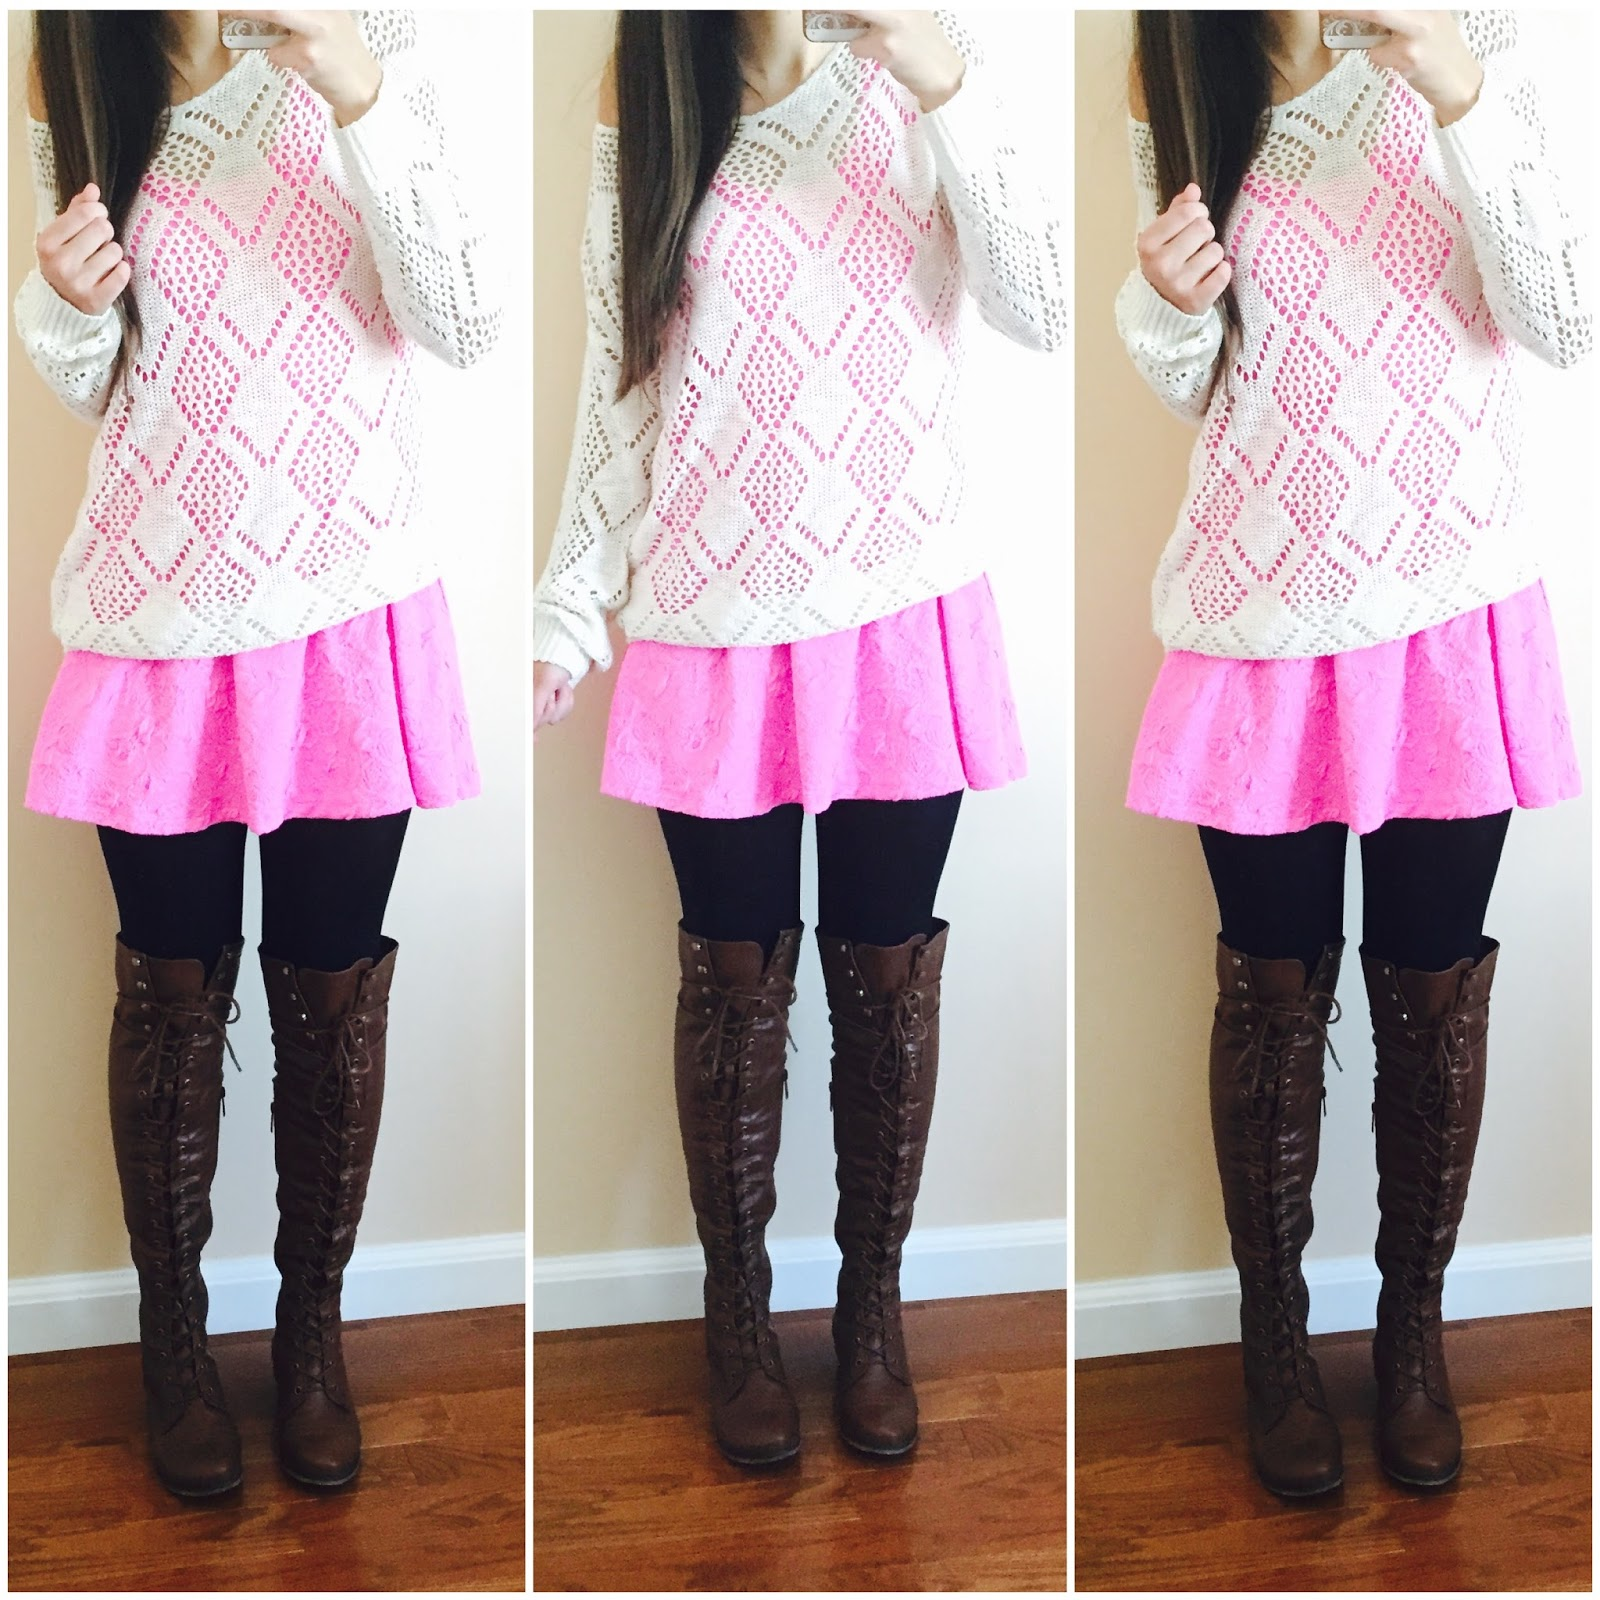 20 ways to style a pink dress, pink blush, pink dress with a sweater over it, knit sweater, brown over the knee boots, amiclubwear, fall outfit, how to style a dress for fall with boots,